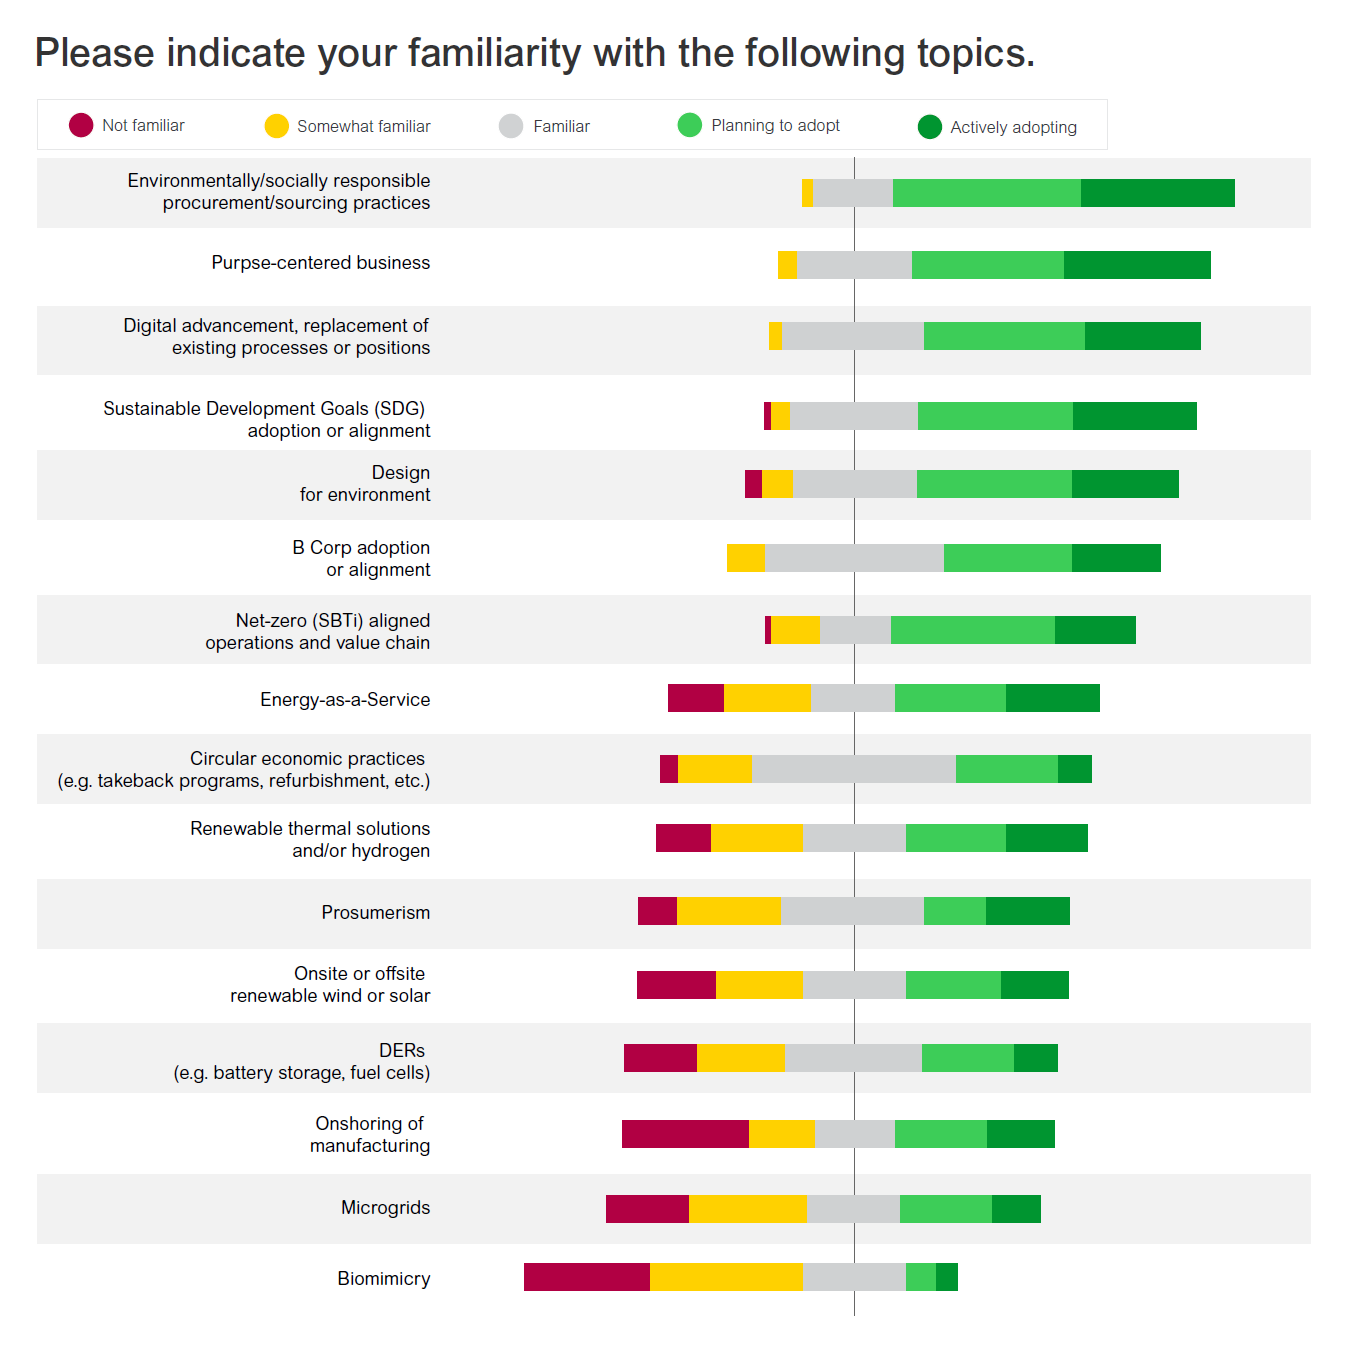 Respondent's familiarity with climate action topics and strategies